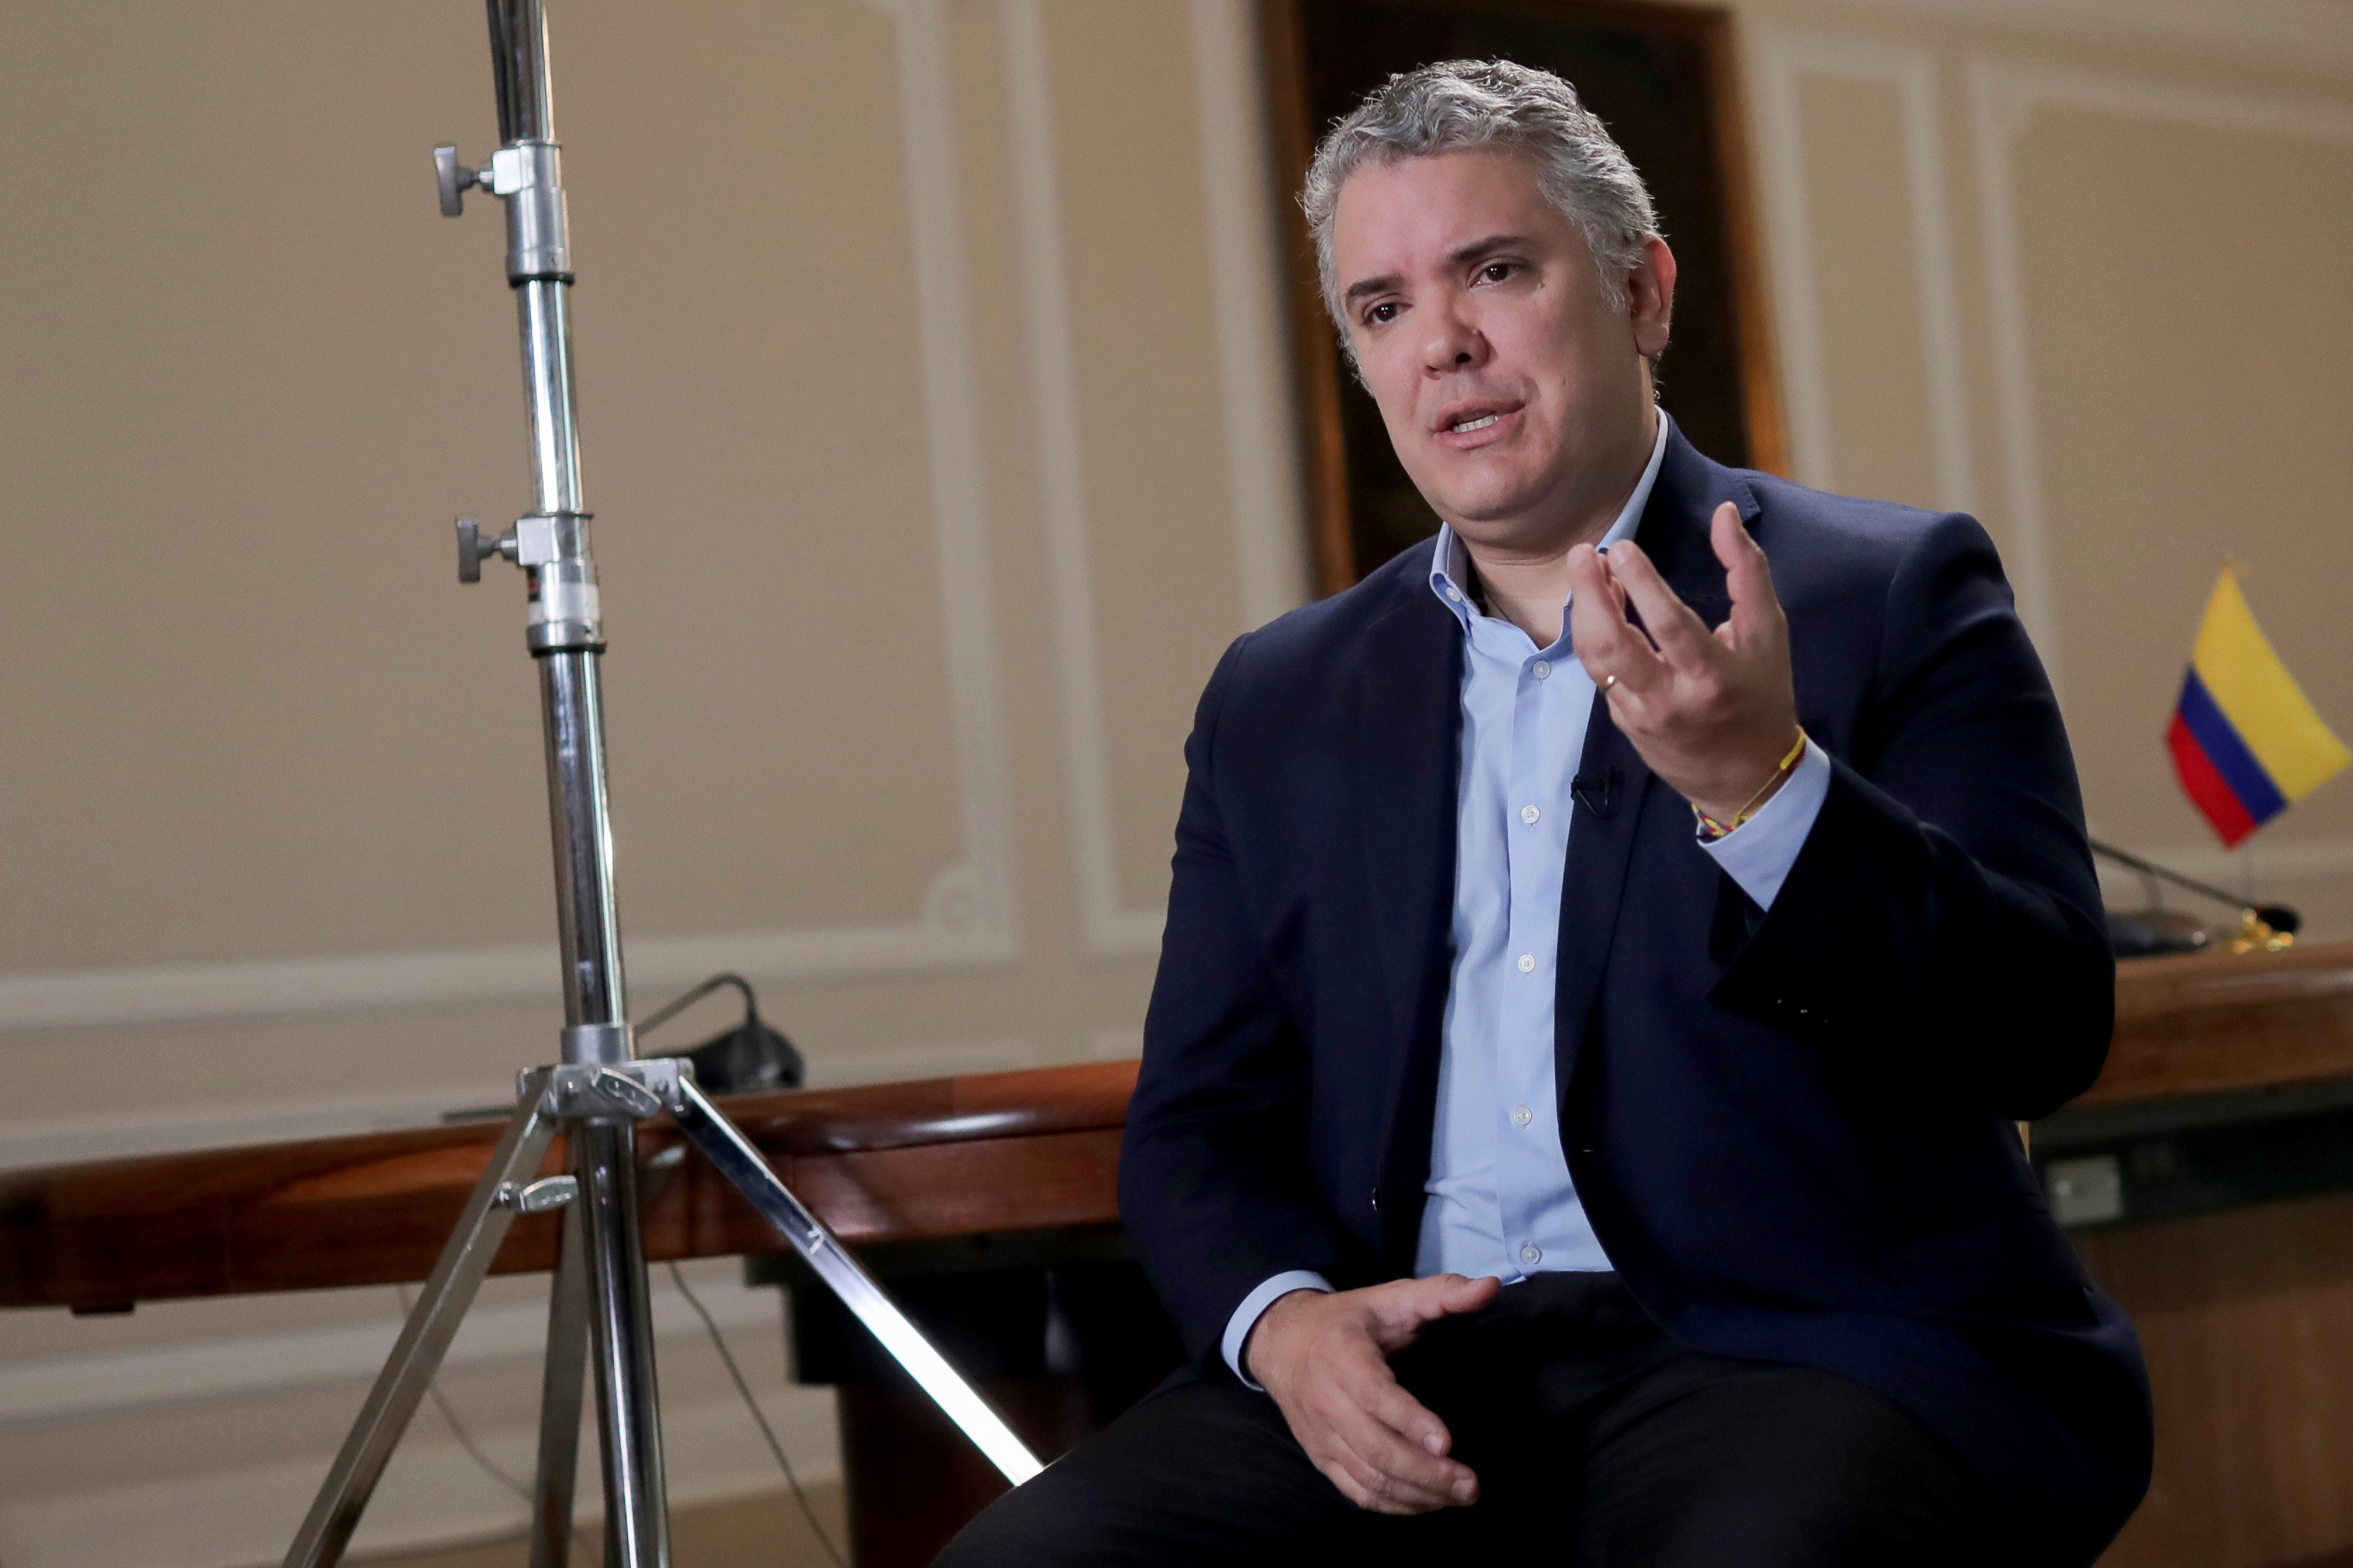 Colombia's President Ivan Duque speaks during an interview with Reuters, amid the outbreak of the coronavirus disease (COVID-19), in Bogota, Colombia June 26, 2020. REUTERS/Luisa Gonzalez - RC27HH9UBSME